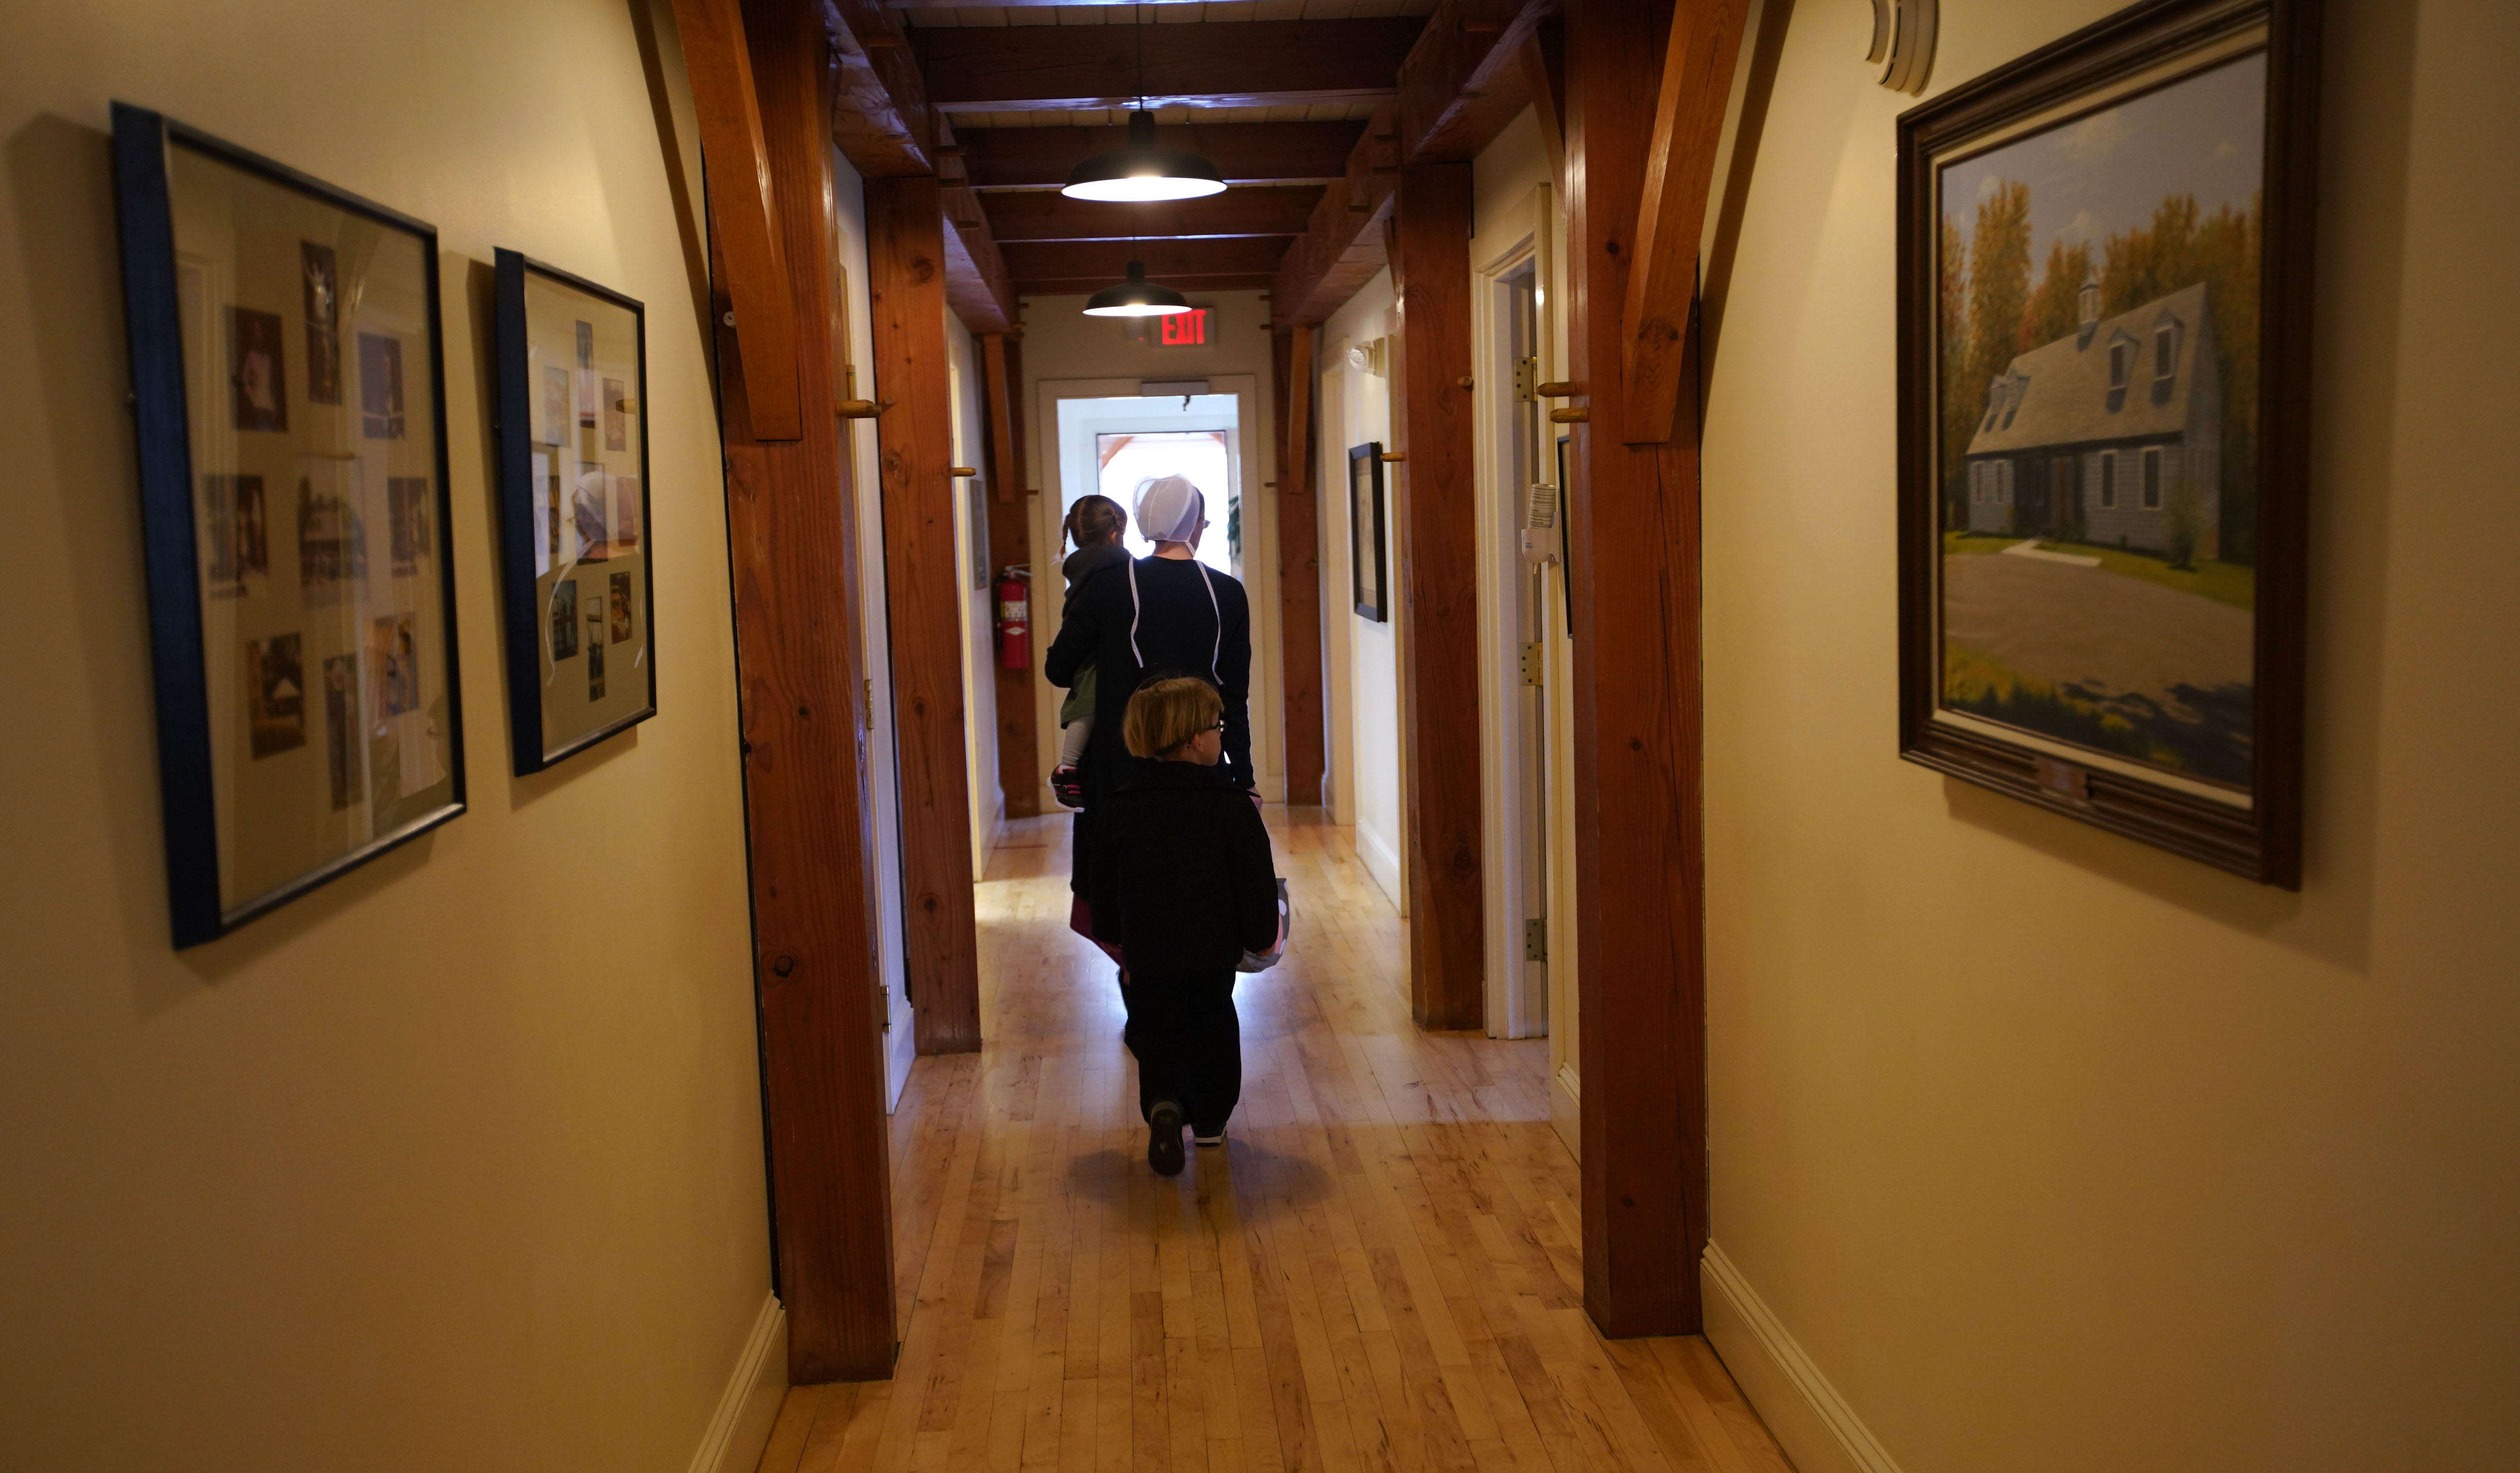 An Amish mother and her two young children walk through a hallway in the Clinic for Special Children in Strasburg, Pennsylvania.